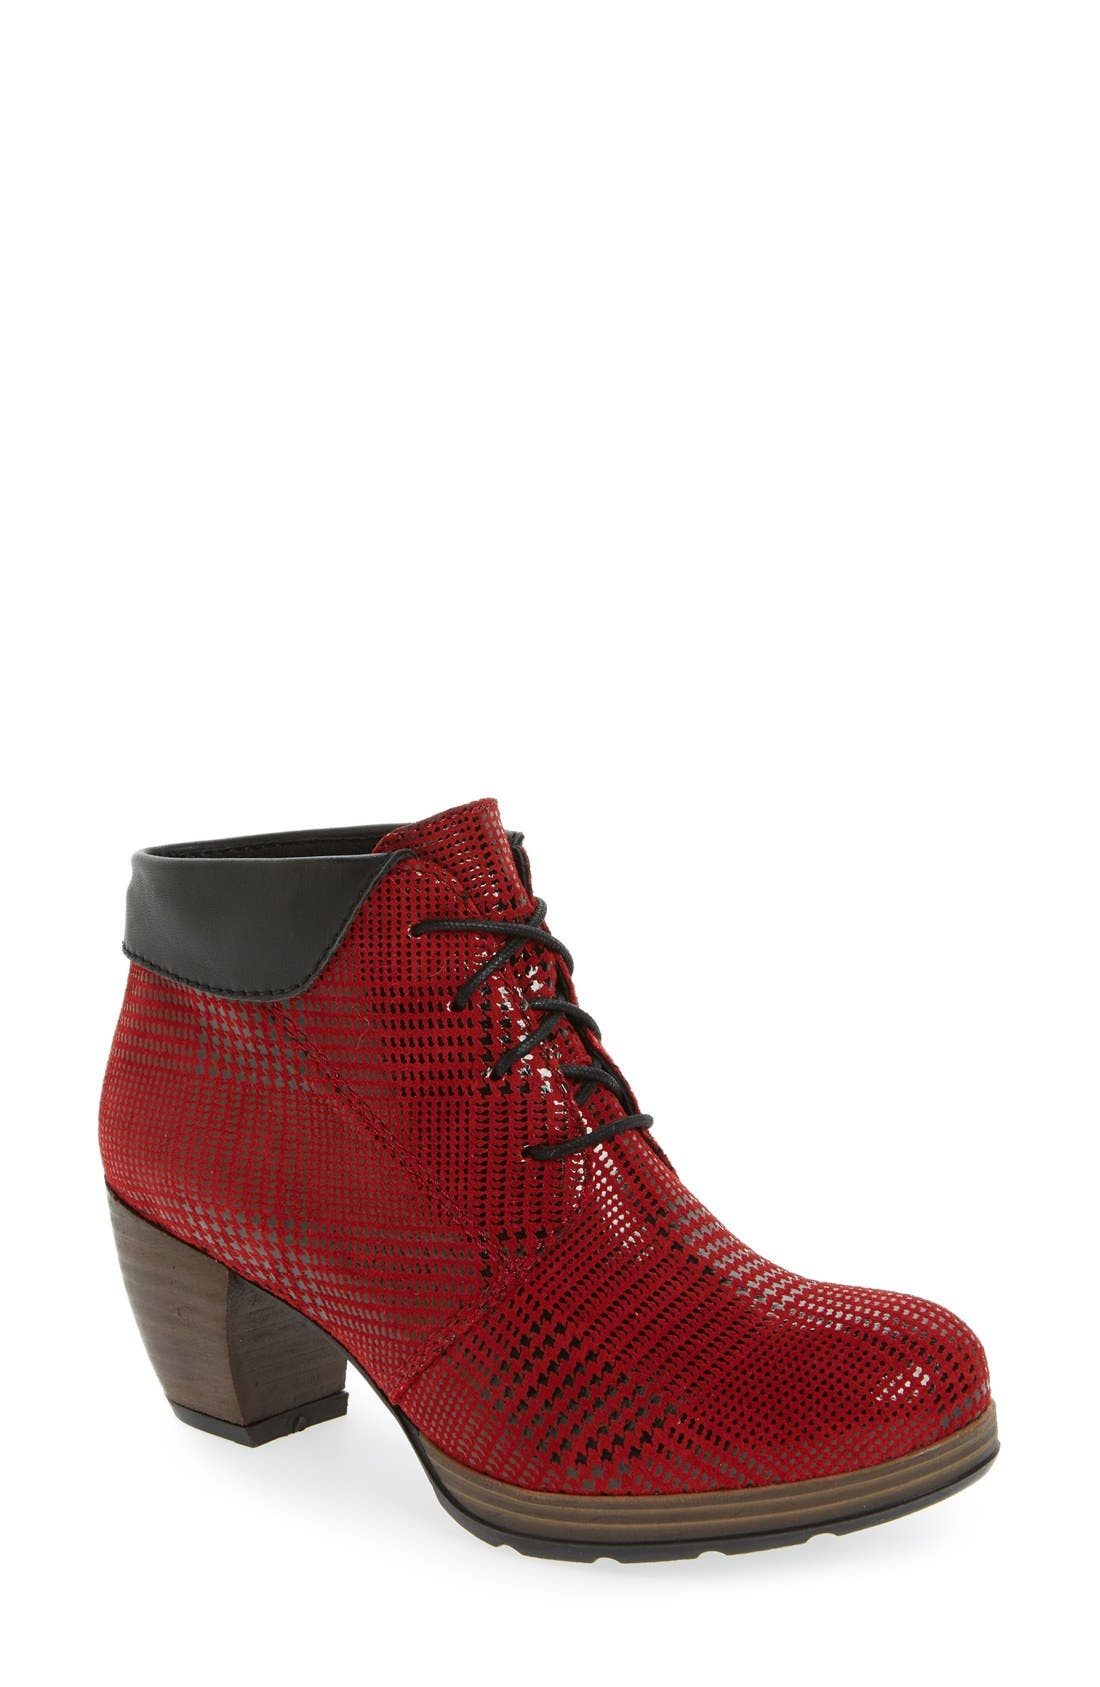 Alternate Image 1 Selected - Wolky 'Jacquerie' Lace-Up Bootie (Women)